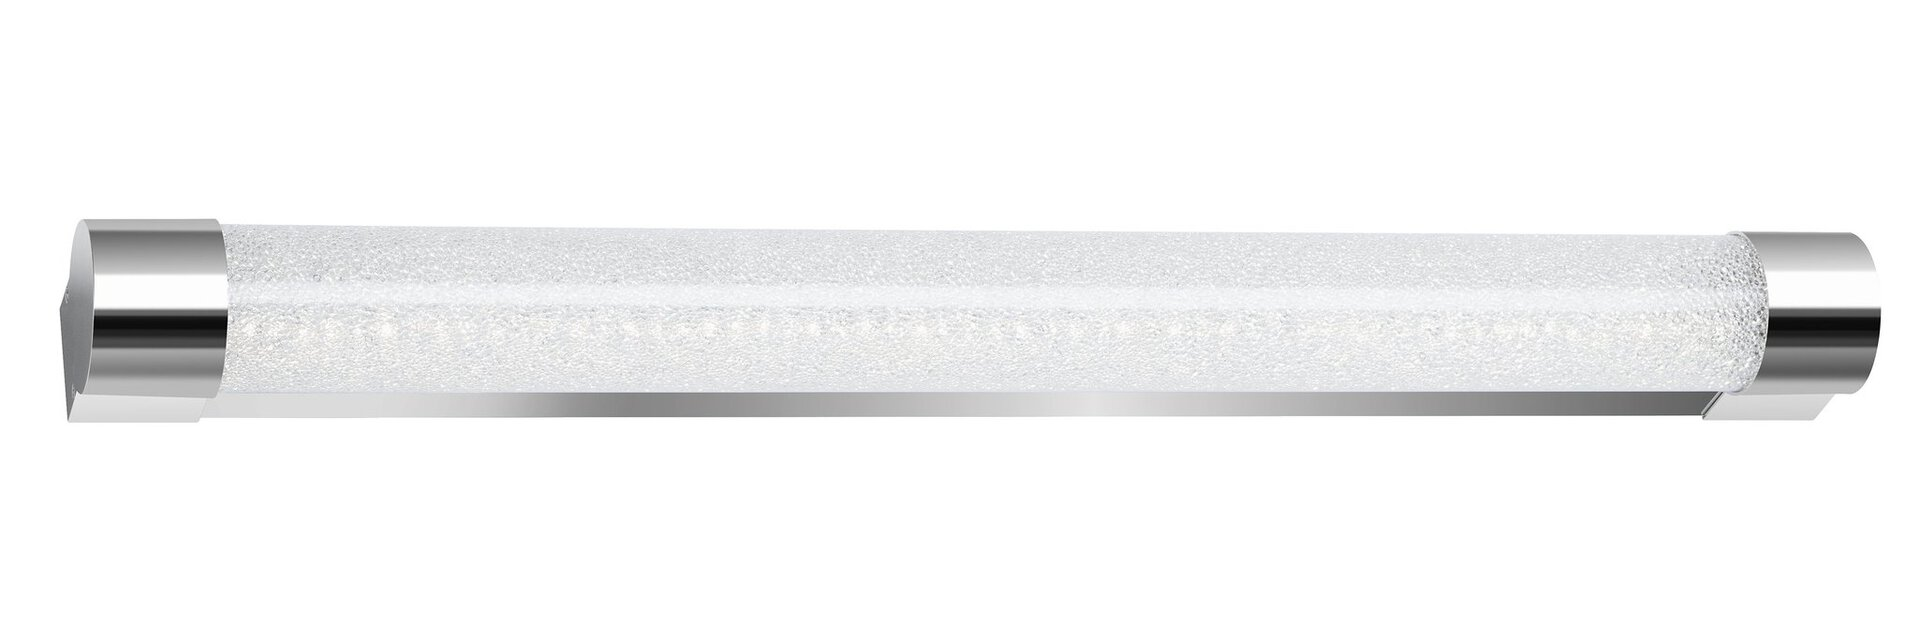 Bad-Wandleuchte Cool & Cosy Briloner Metall silber 7 x 5 x 59 cm